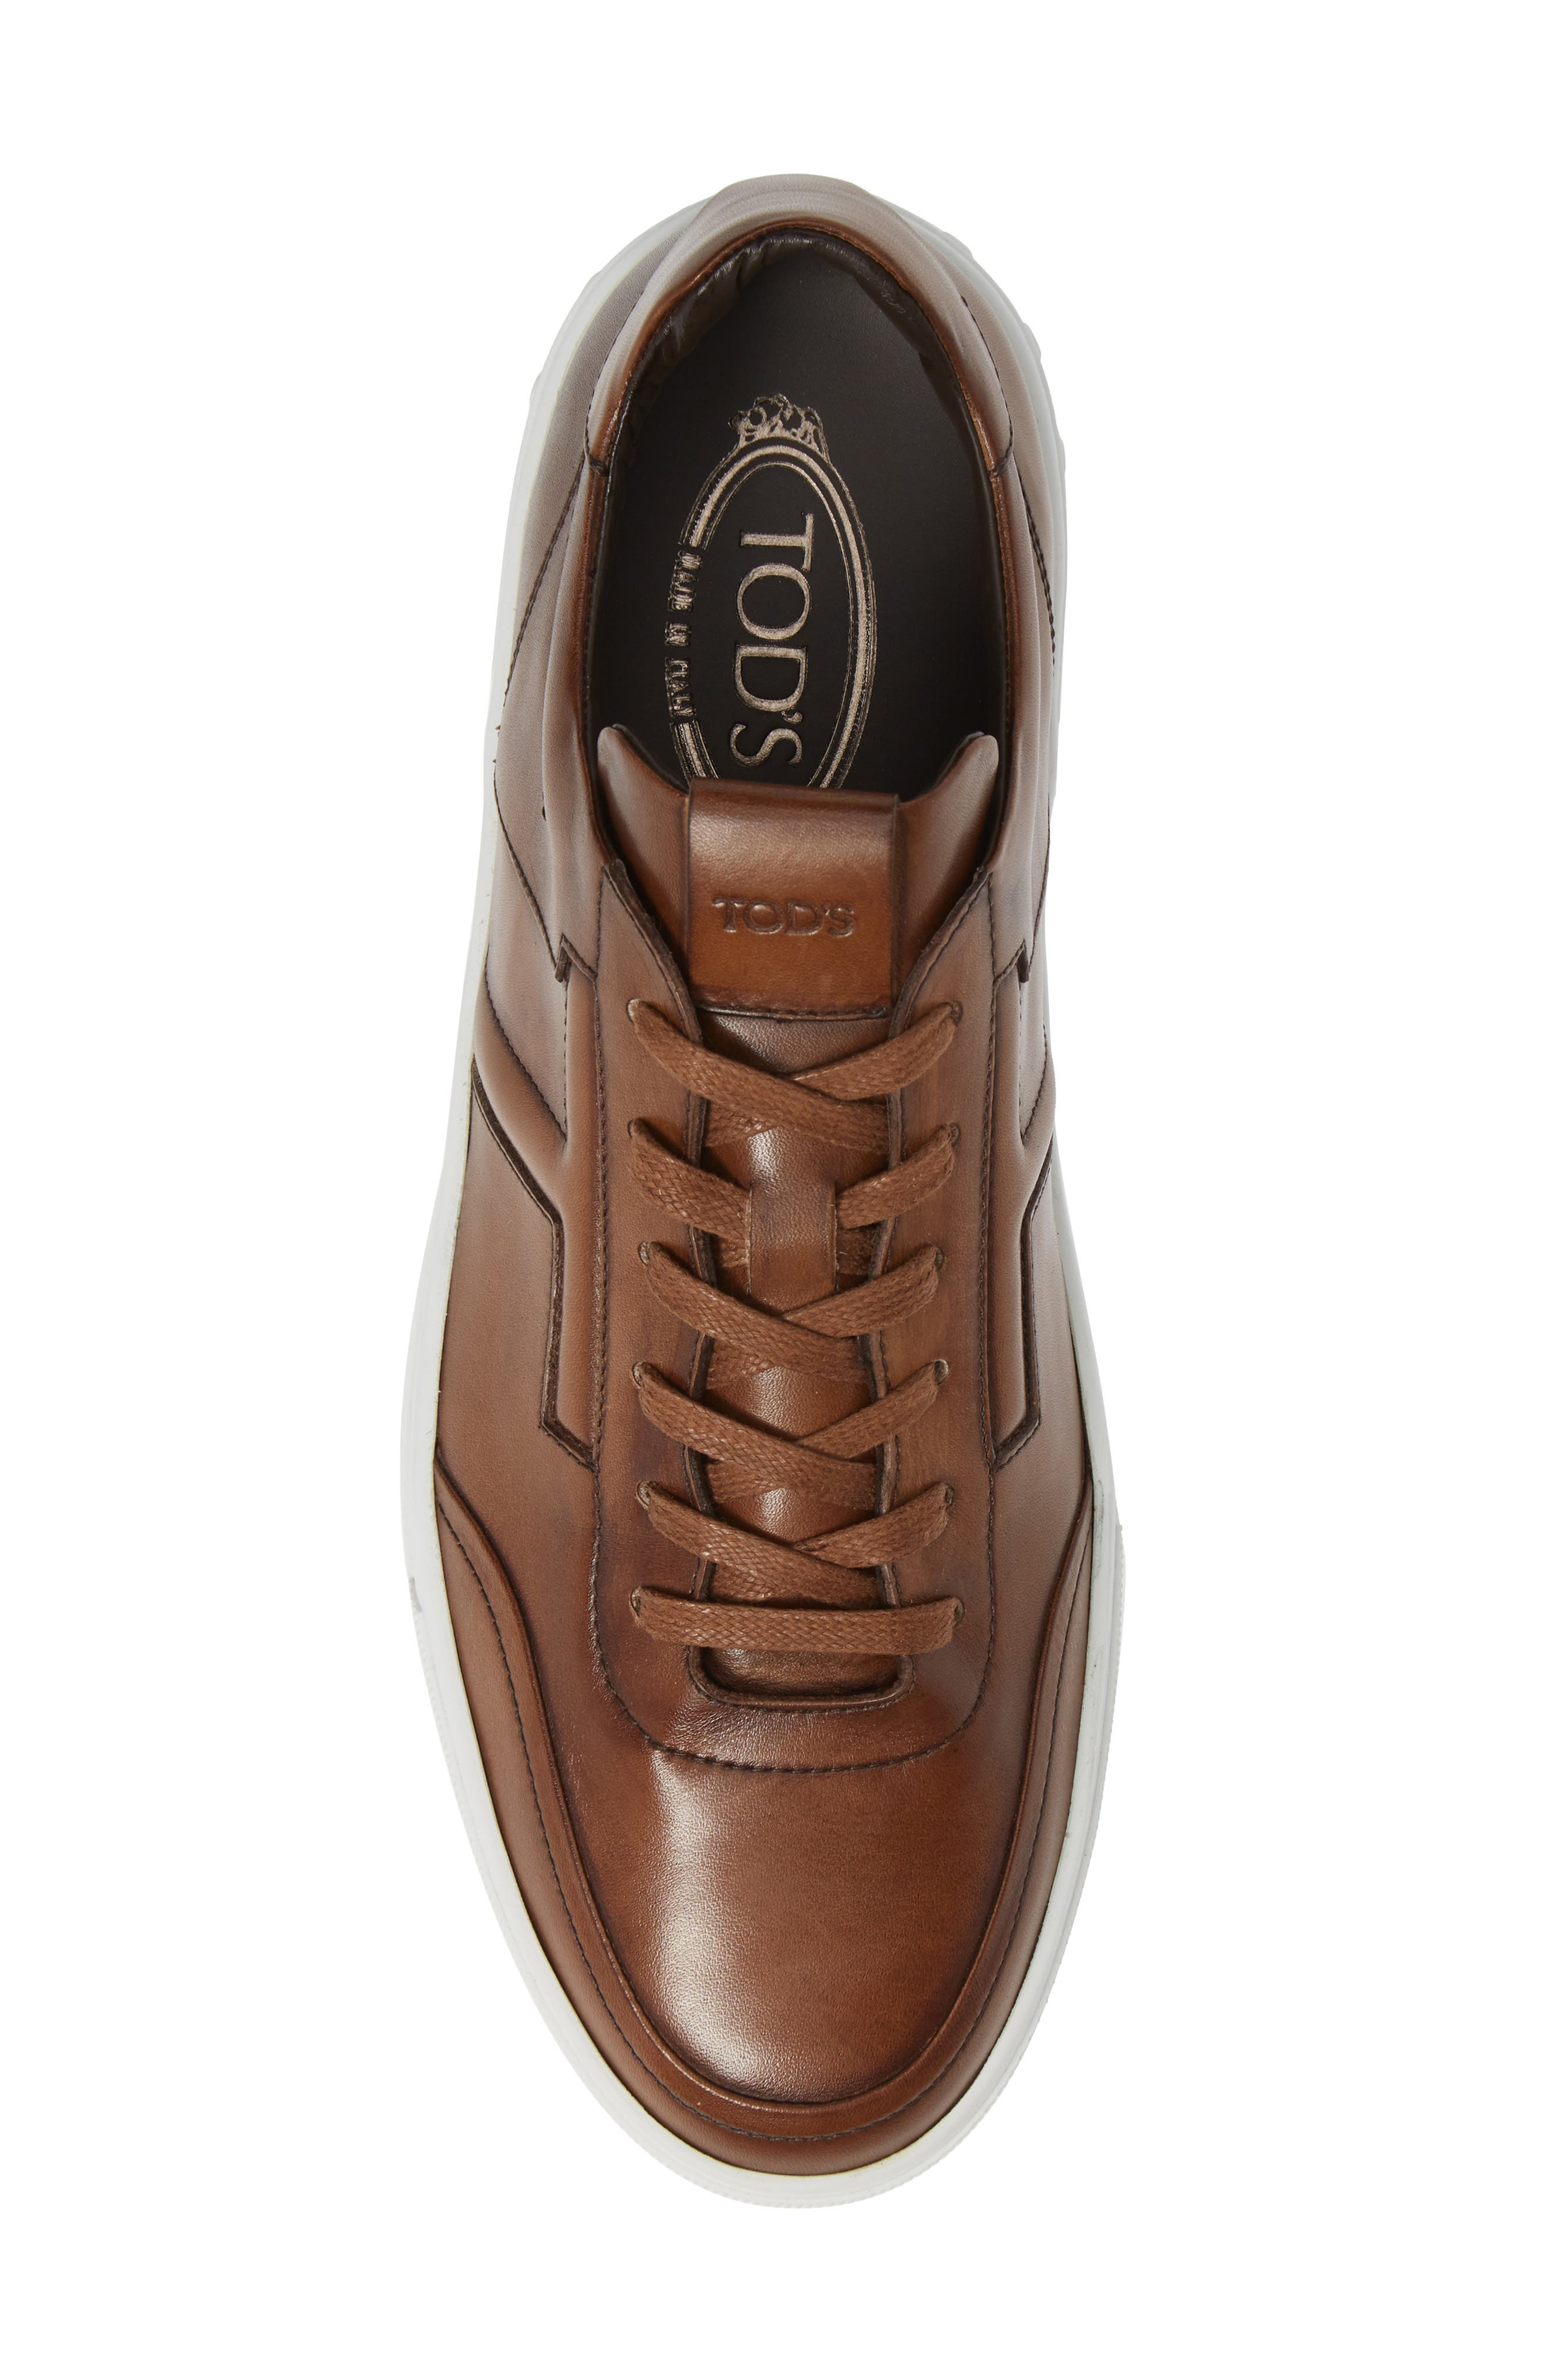 TOD'S, 'Cassetta' Sneaker, Alternate thumbnail 5, color, CARAMEL/ SPECIAL LEATHER